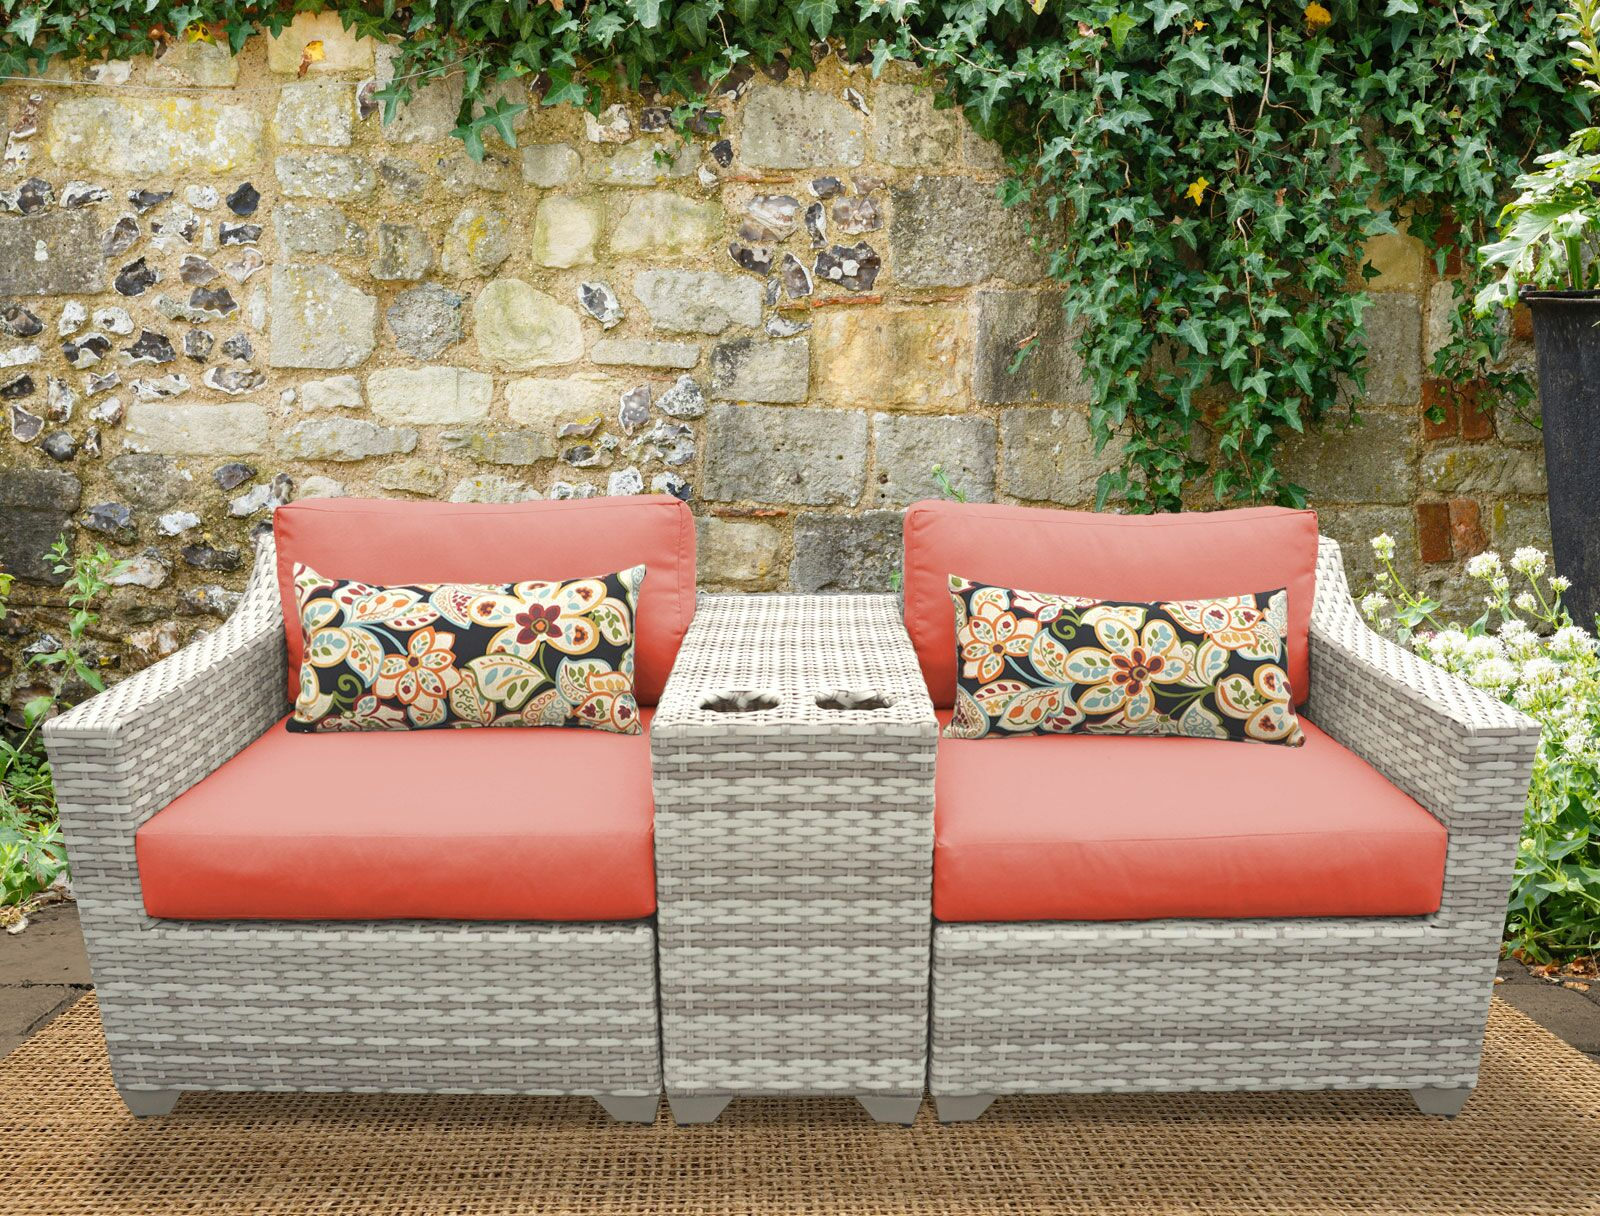 Ansonia 3 Piece Sofa Set with Cushions Color: Tangerine